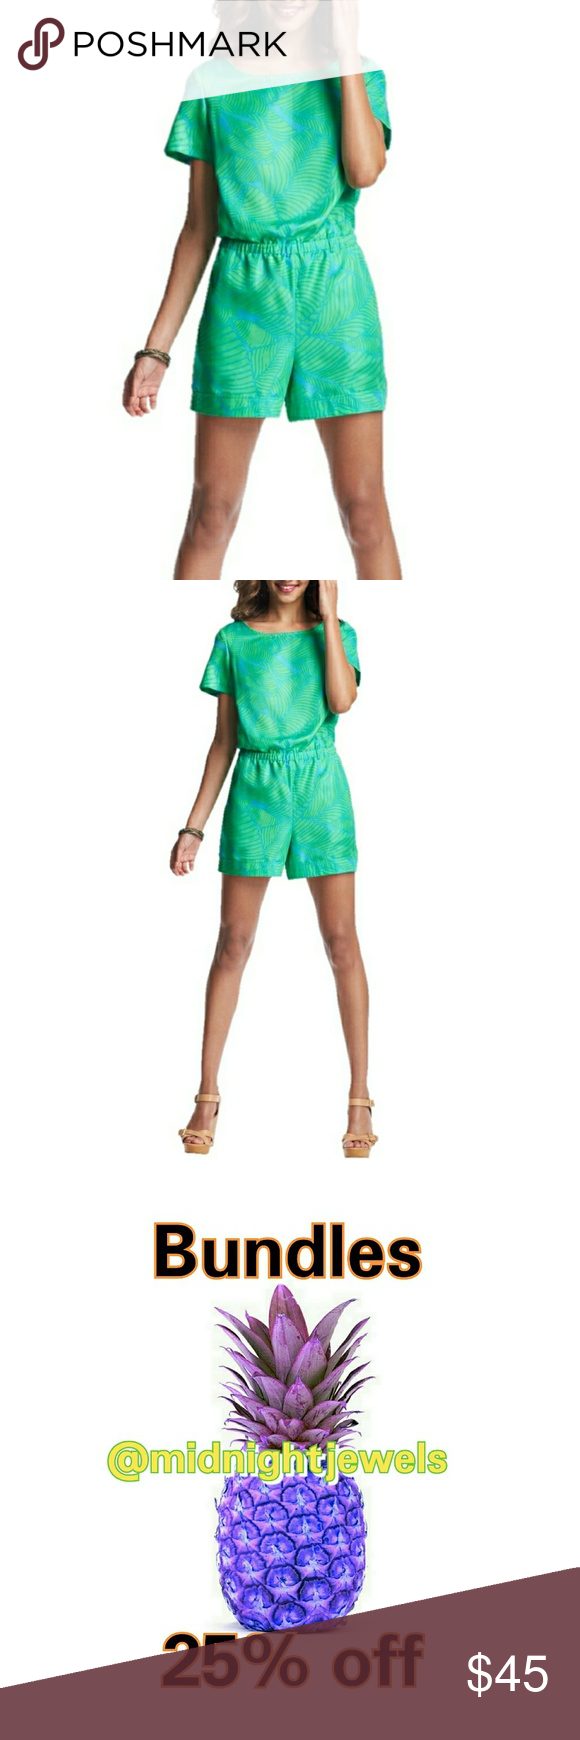 Ann taylor loft green romper xl vivid fern just absolutely